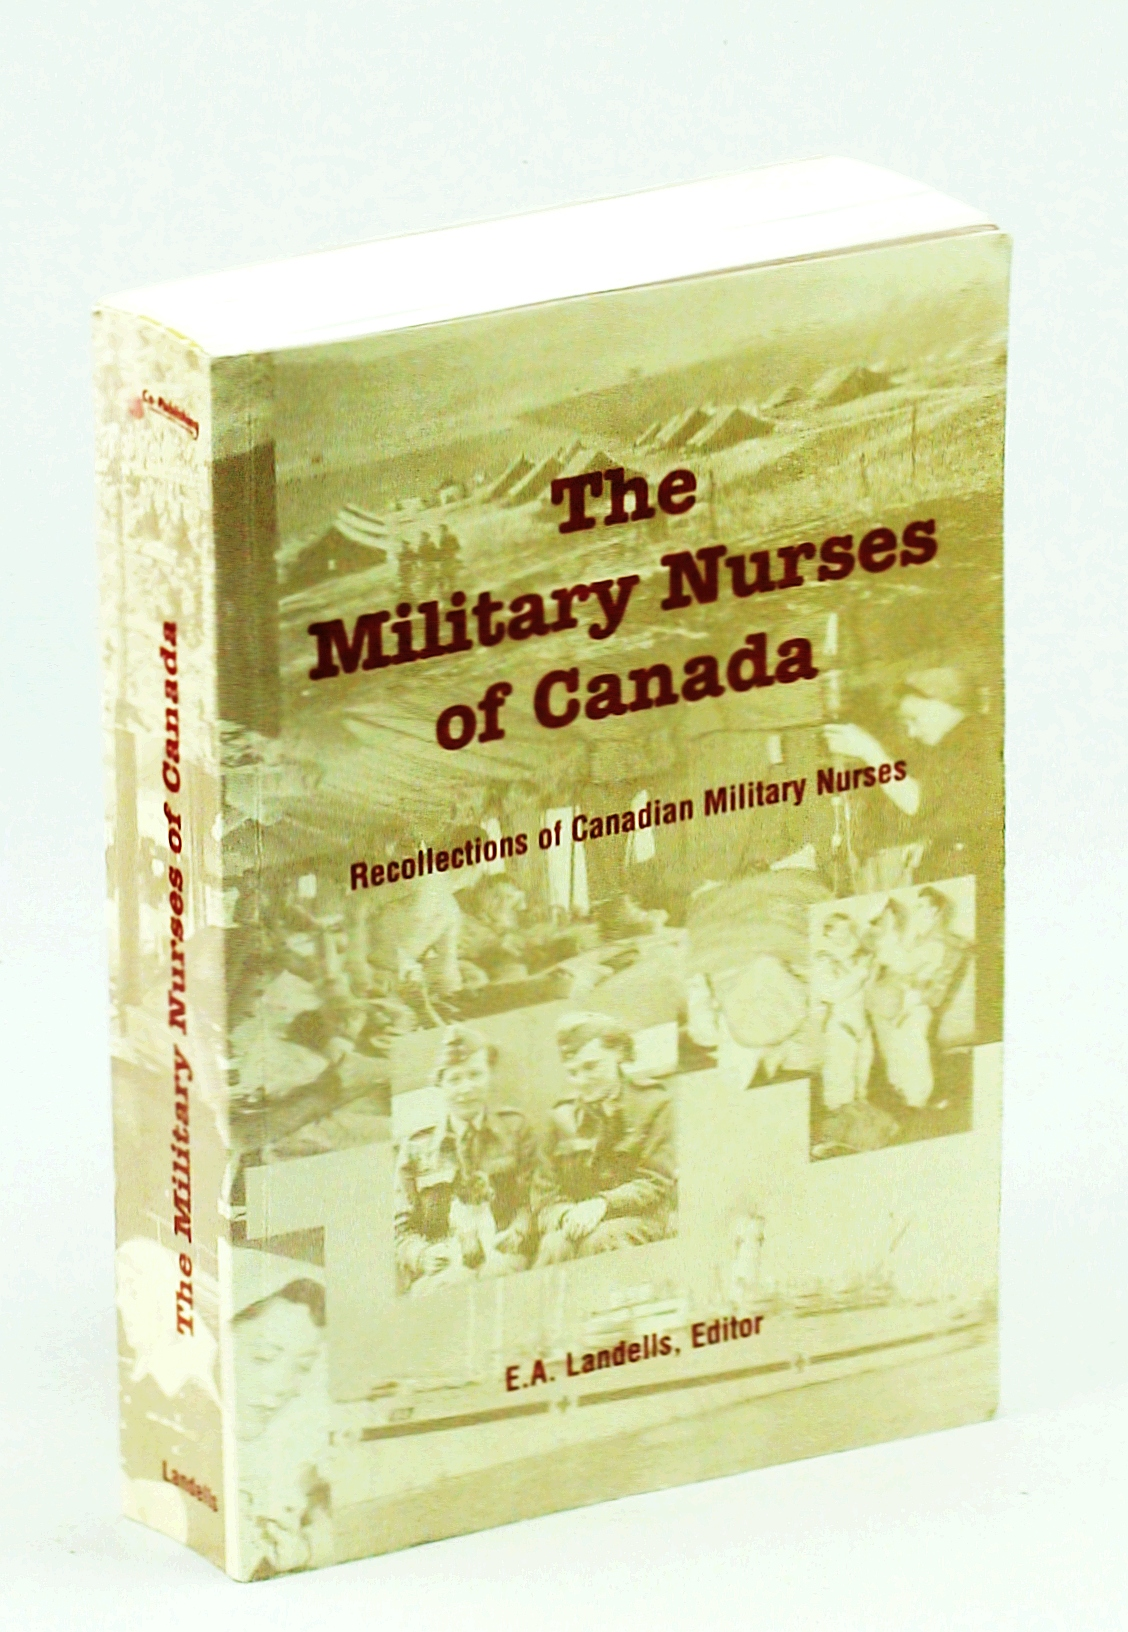 Image for The Military Nurses of Canada: Recollections of Canadian Military Nurses, Vol. 1